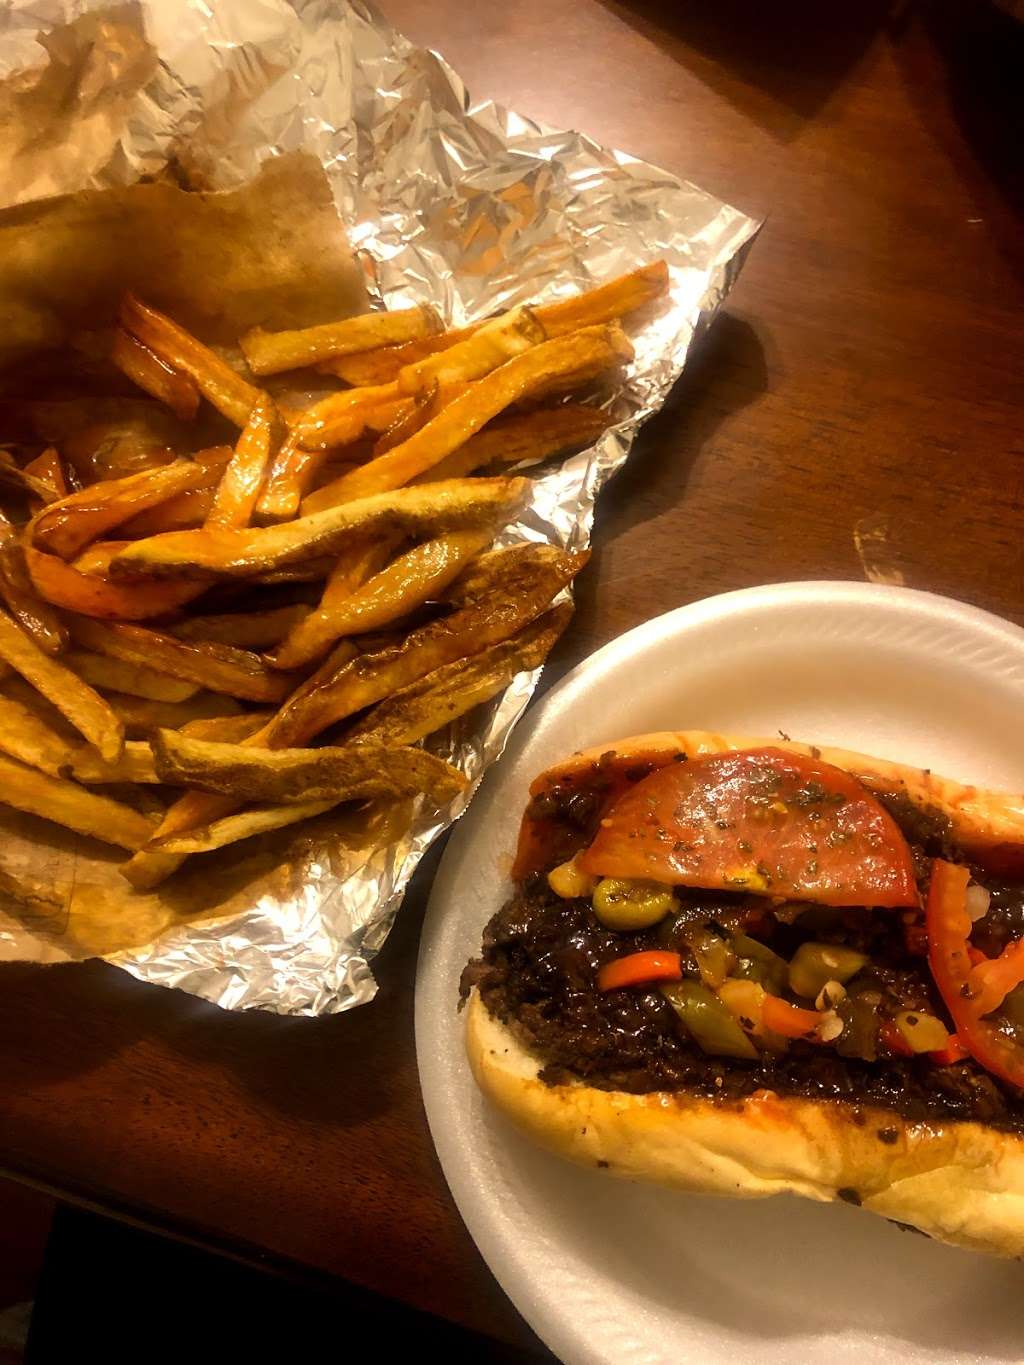 Mr. Pats Hoagy and Steak Sandwich - restaurant  | Photo 2 of 7 | Address: 1122 W 95th St, Chicago, IL 60643, USA